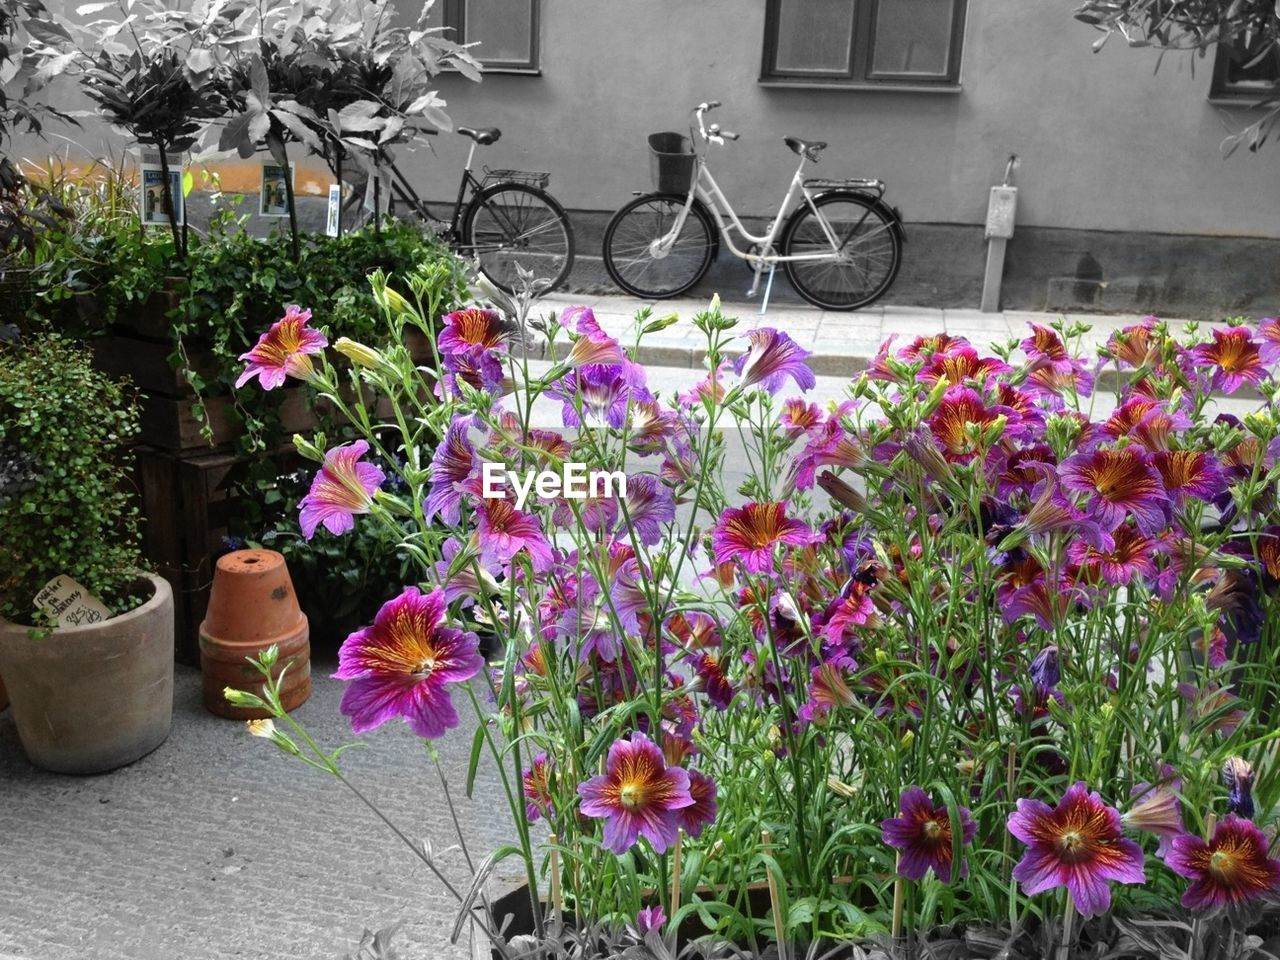 flower, growth, plant, potted plant, outdoors, no people, nature, fragility, day, beauty in nature, freshness, flower head